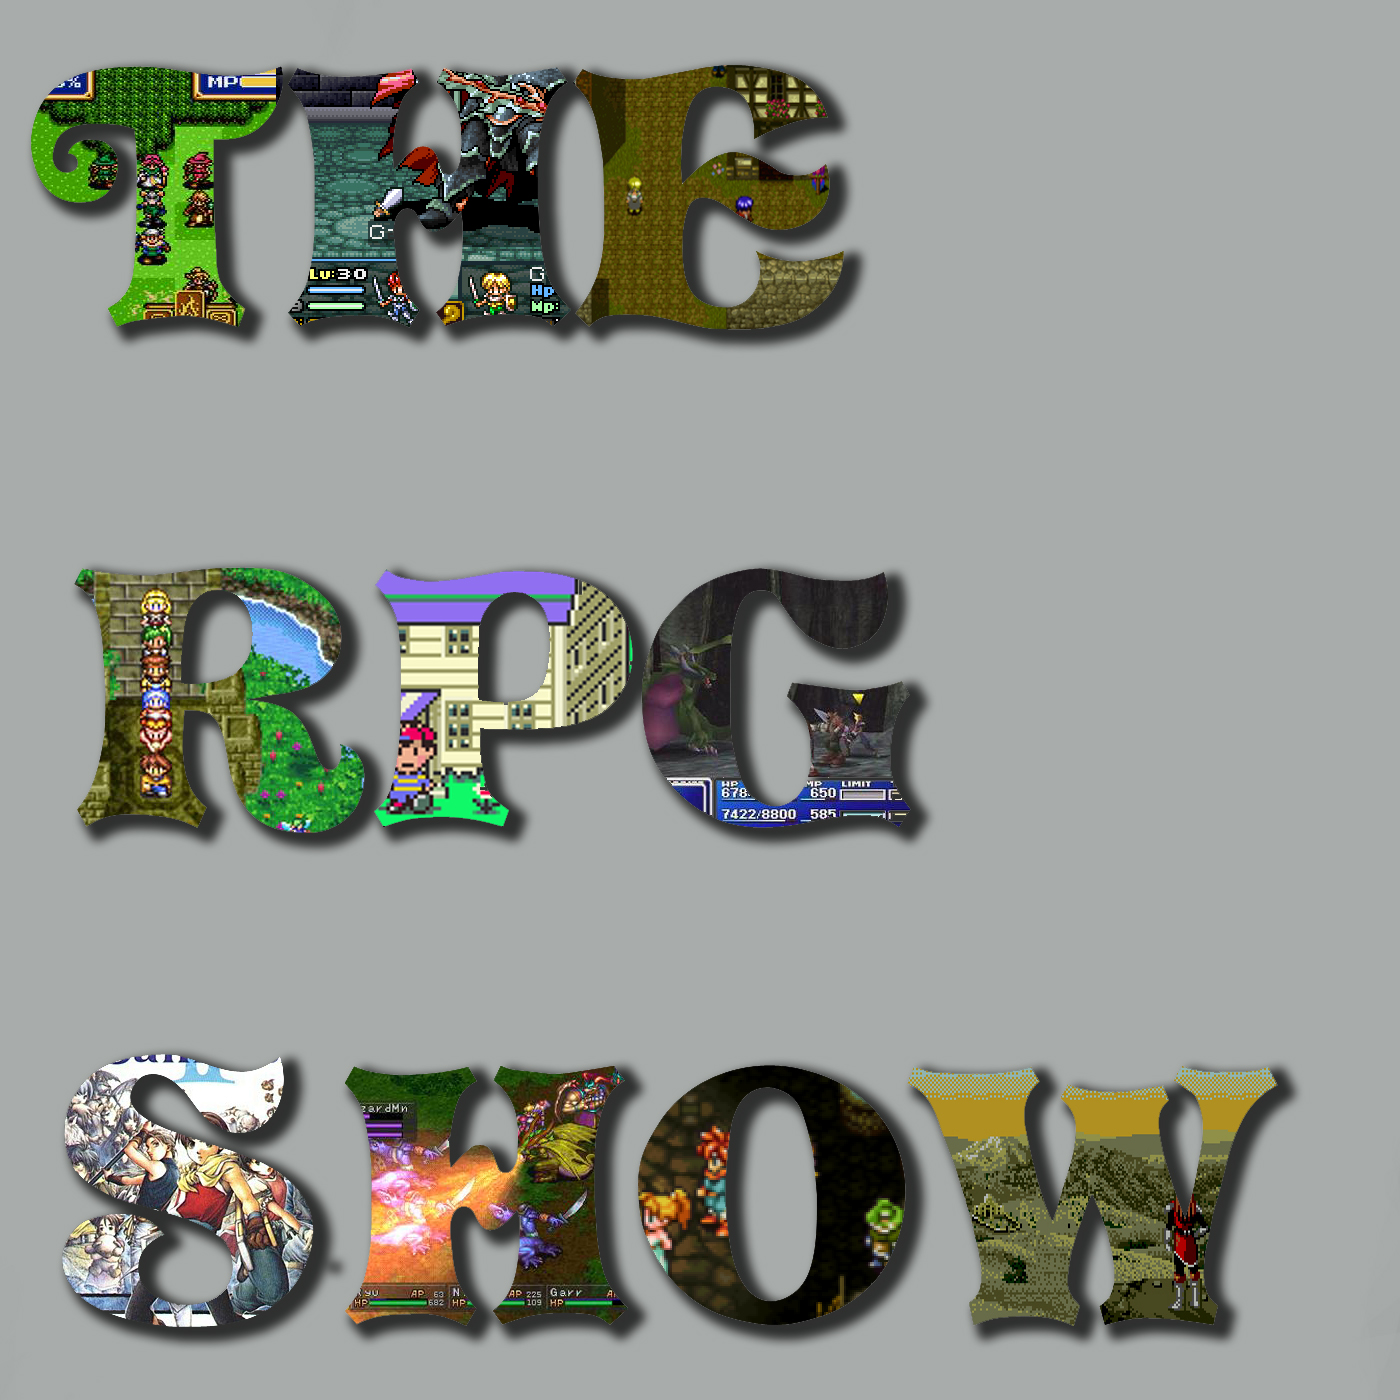 The RPG Show